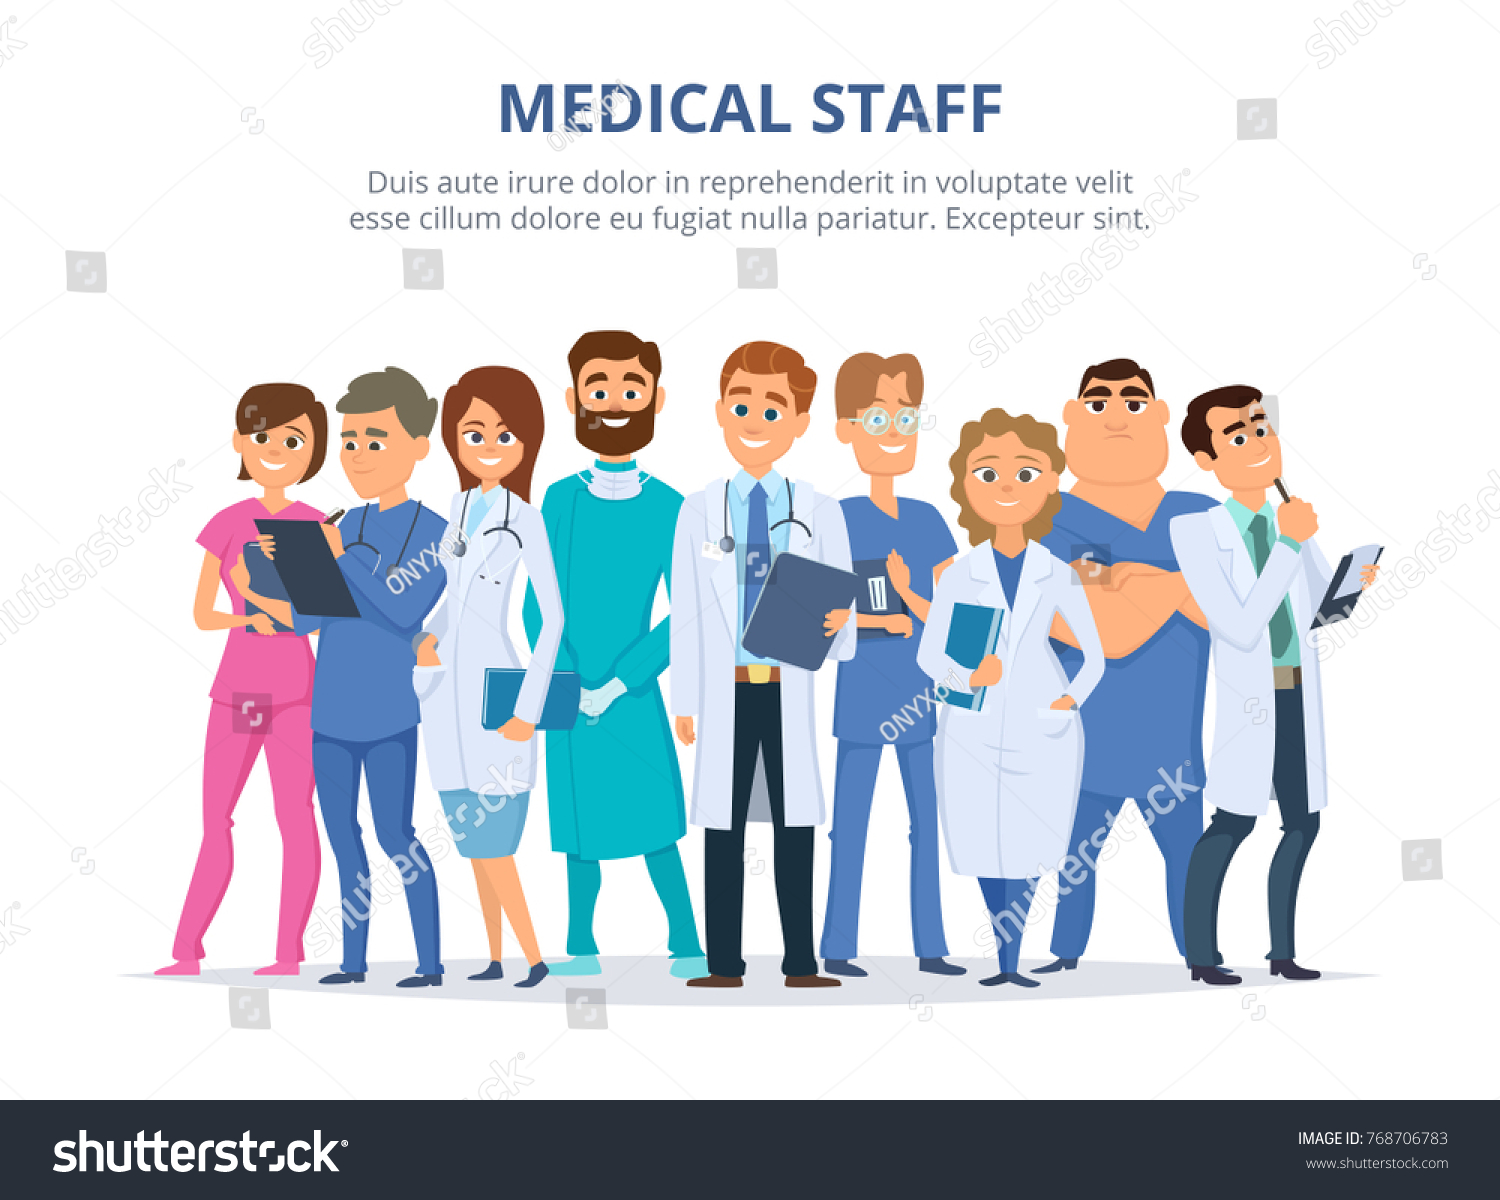 Medical Staff Group Male Female Doctors Stock Vector Royalty Free 768706783